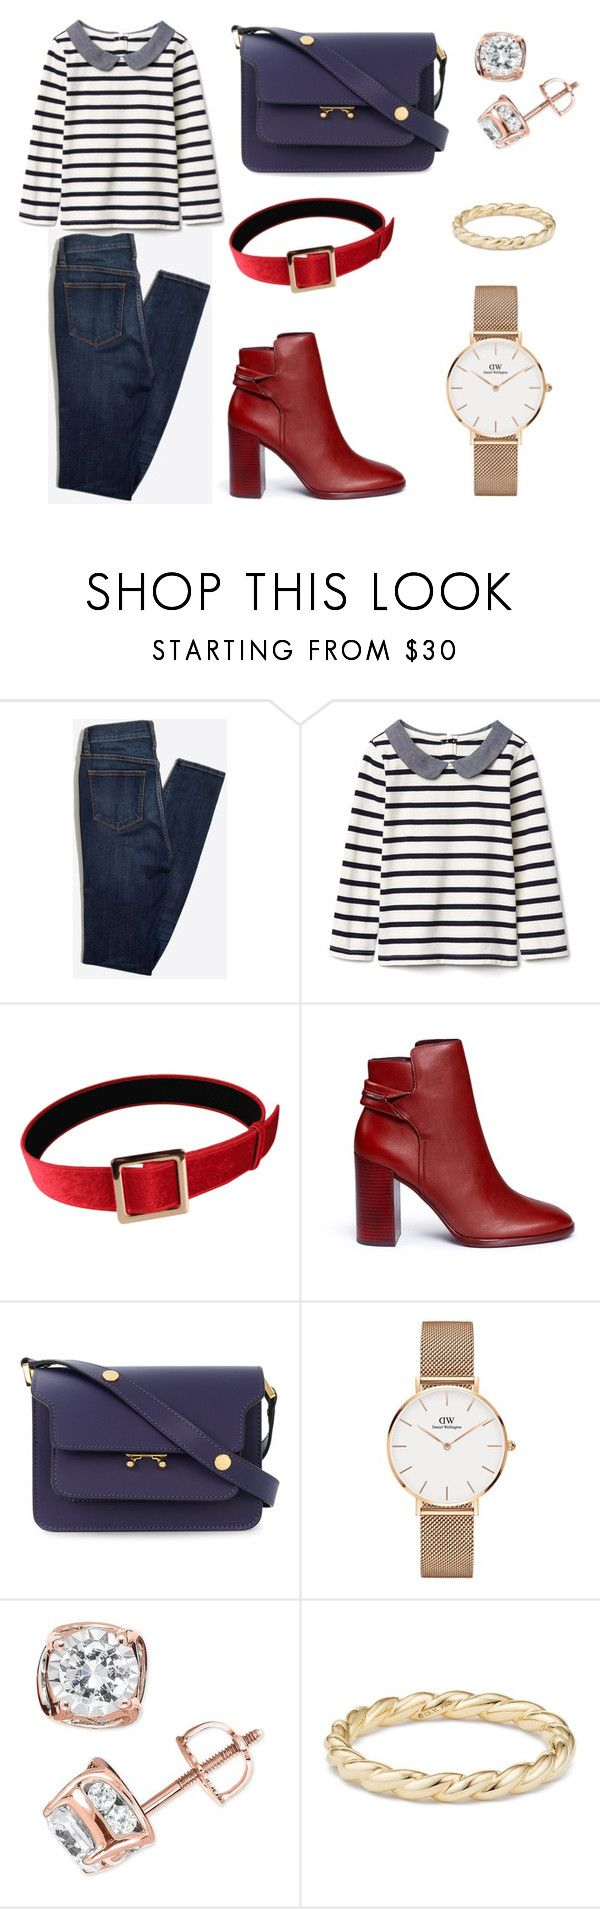 """sailors outfit"" by meliaa888 ❤ liked on Polyvore featuring Mercedes Castillo, Marni, Daniel Wellington, TruMiracle and David Yurman"